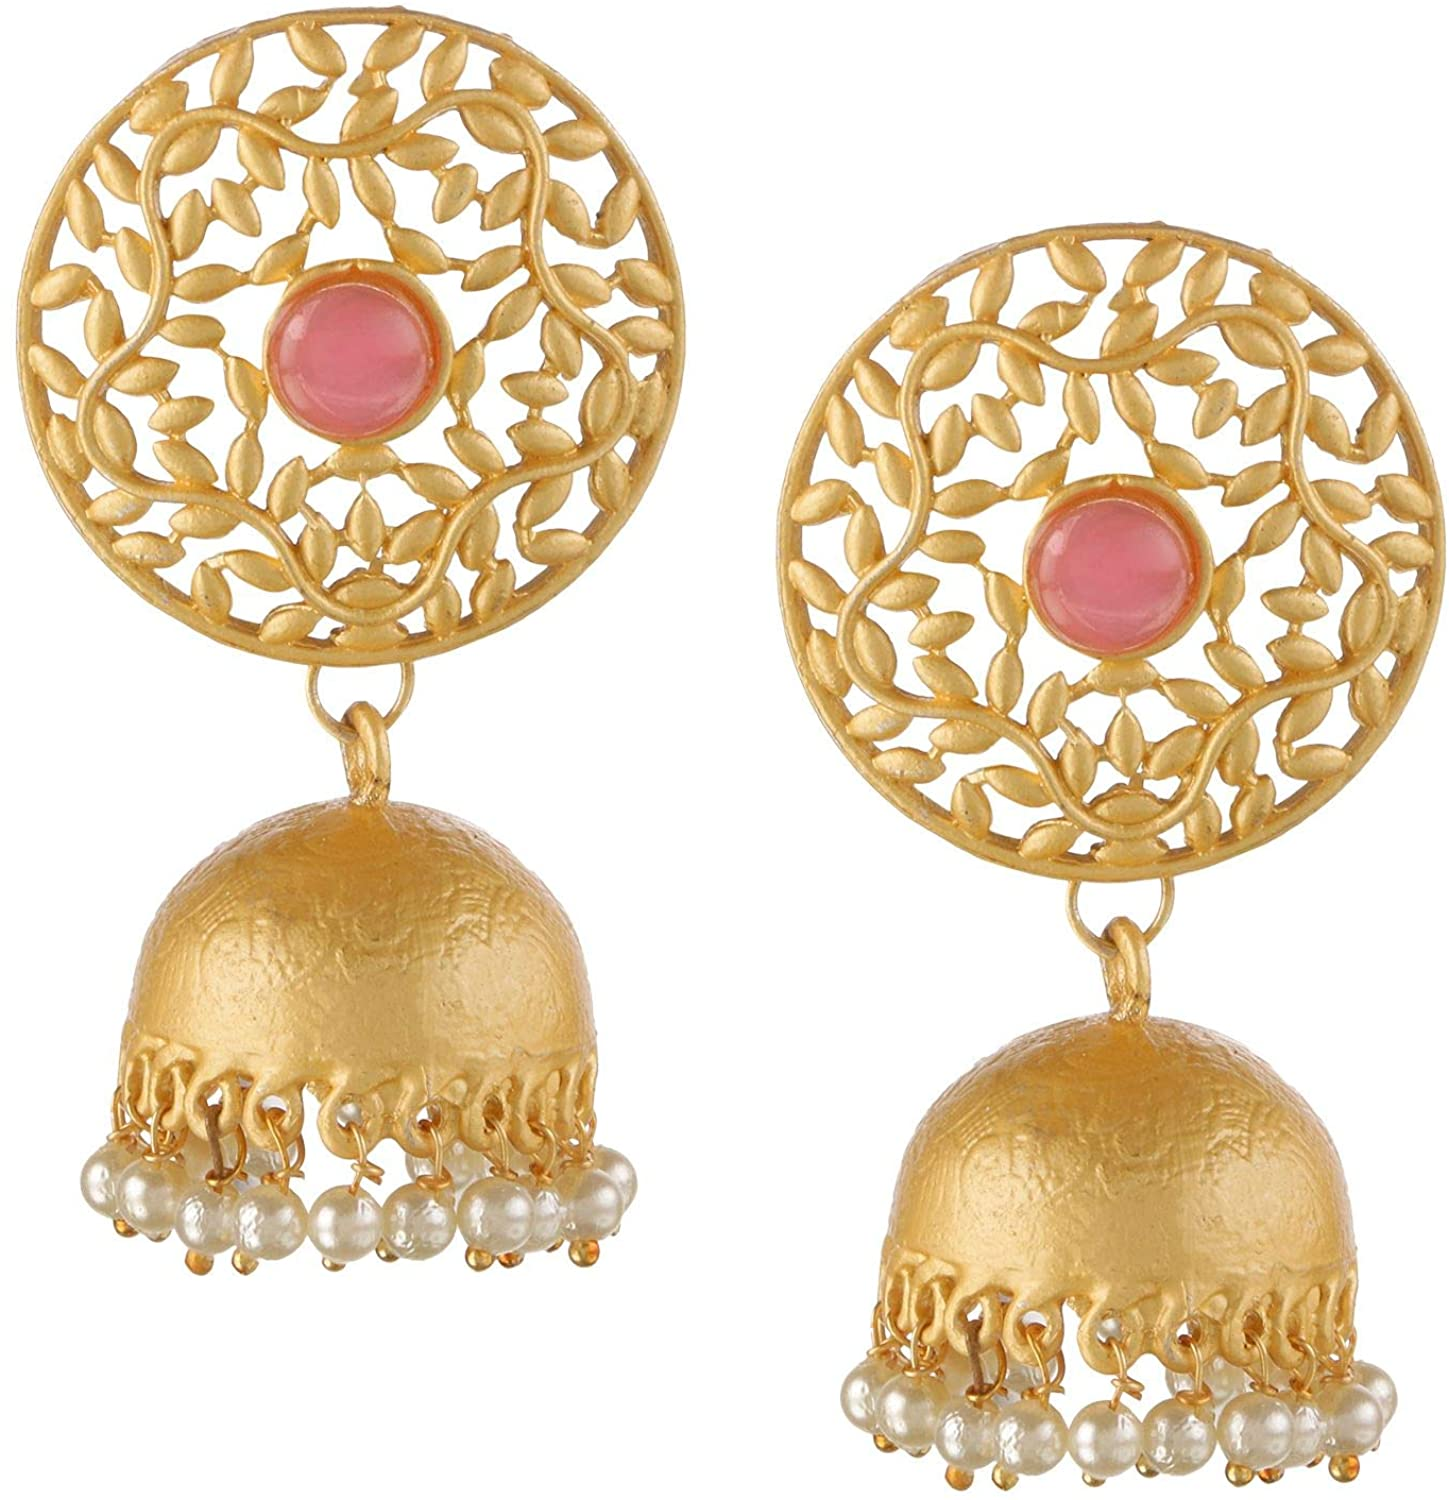 Efulgenz Indian Bollywood 14K Gold Plated Pearl Round Jhumka Jhumki Jewelry Earrings Set